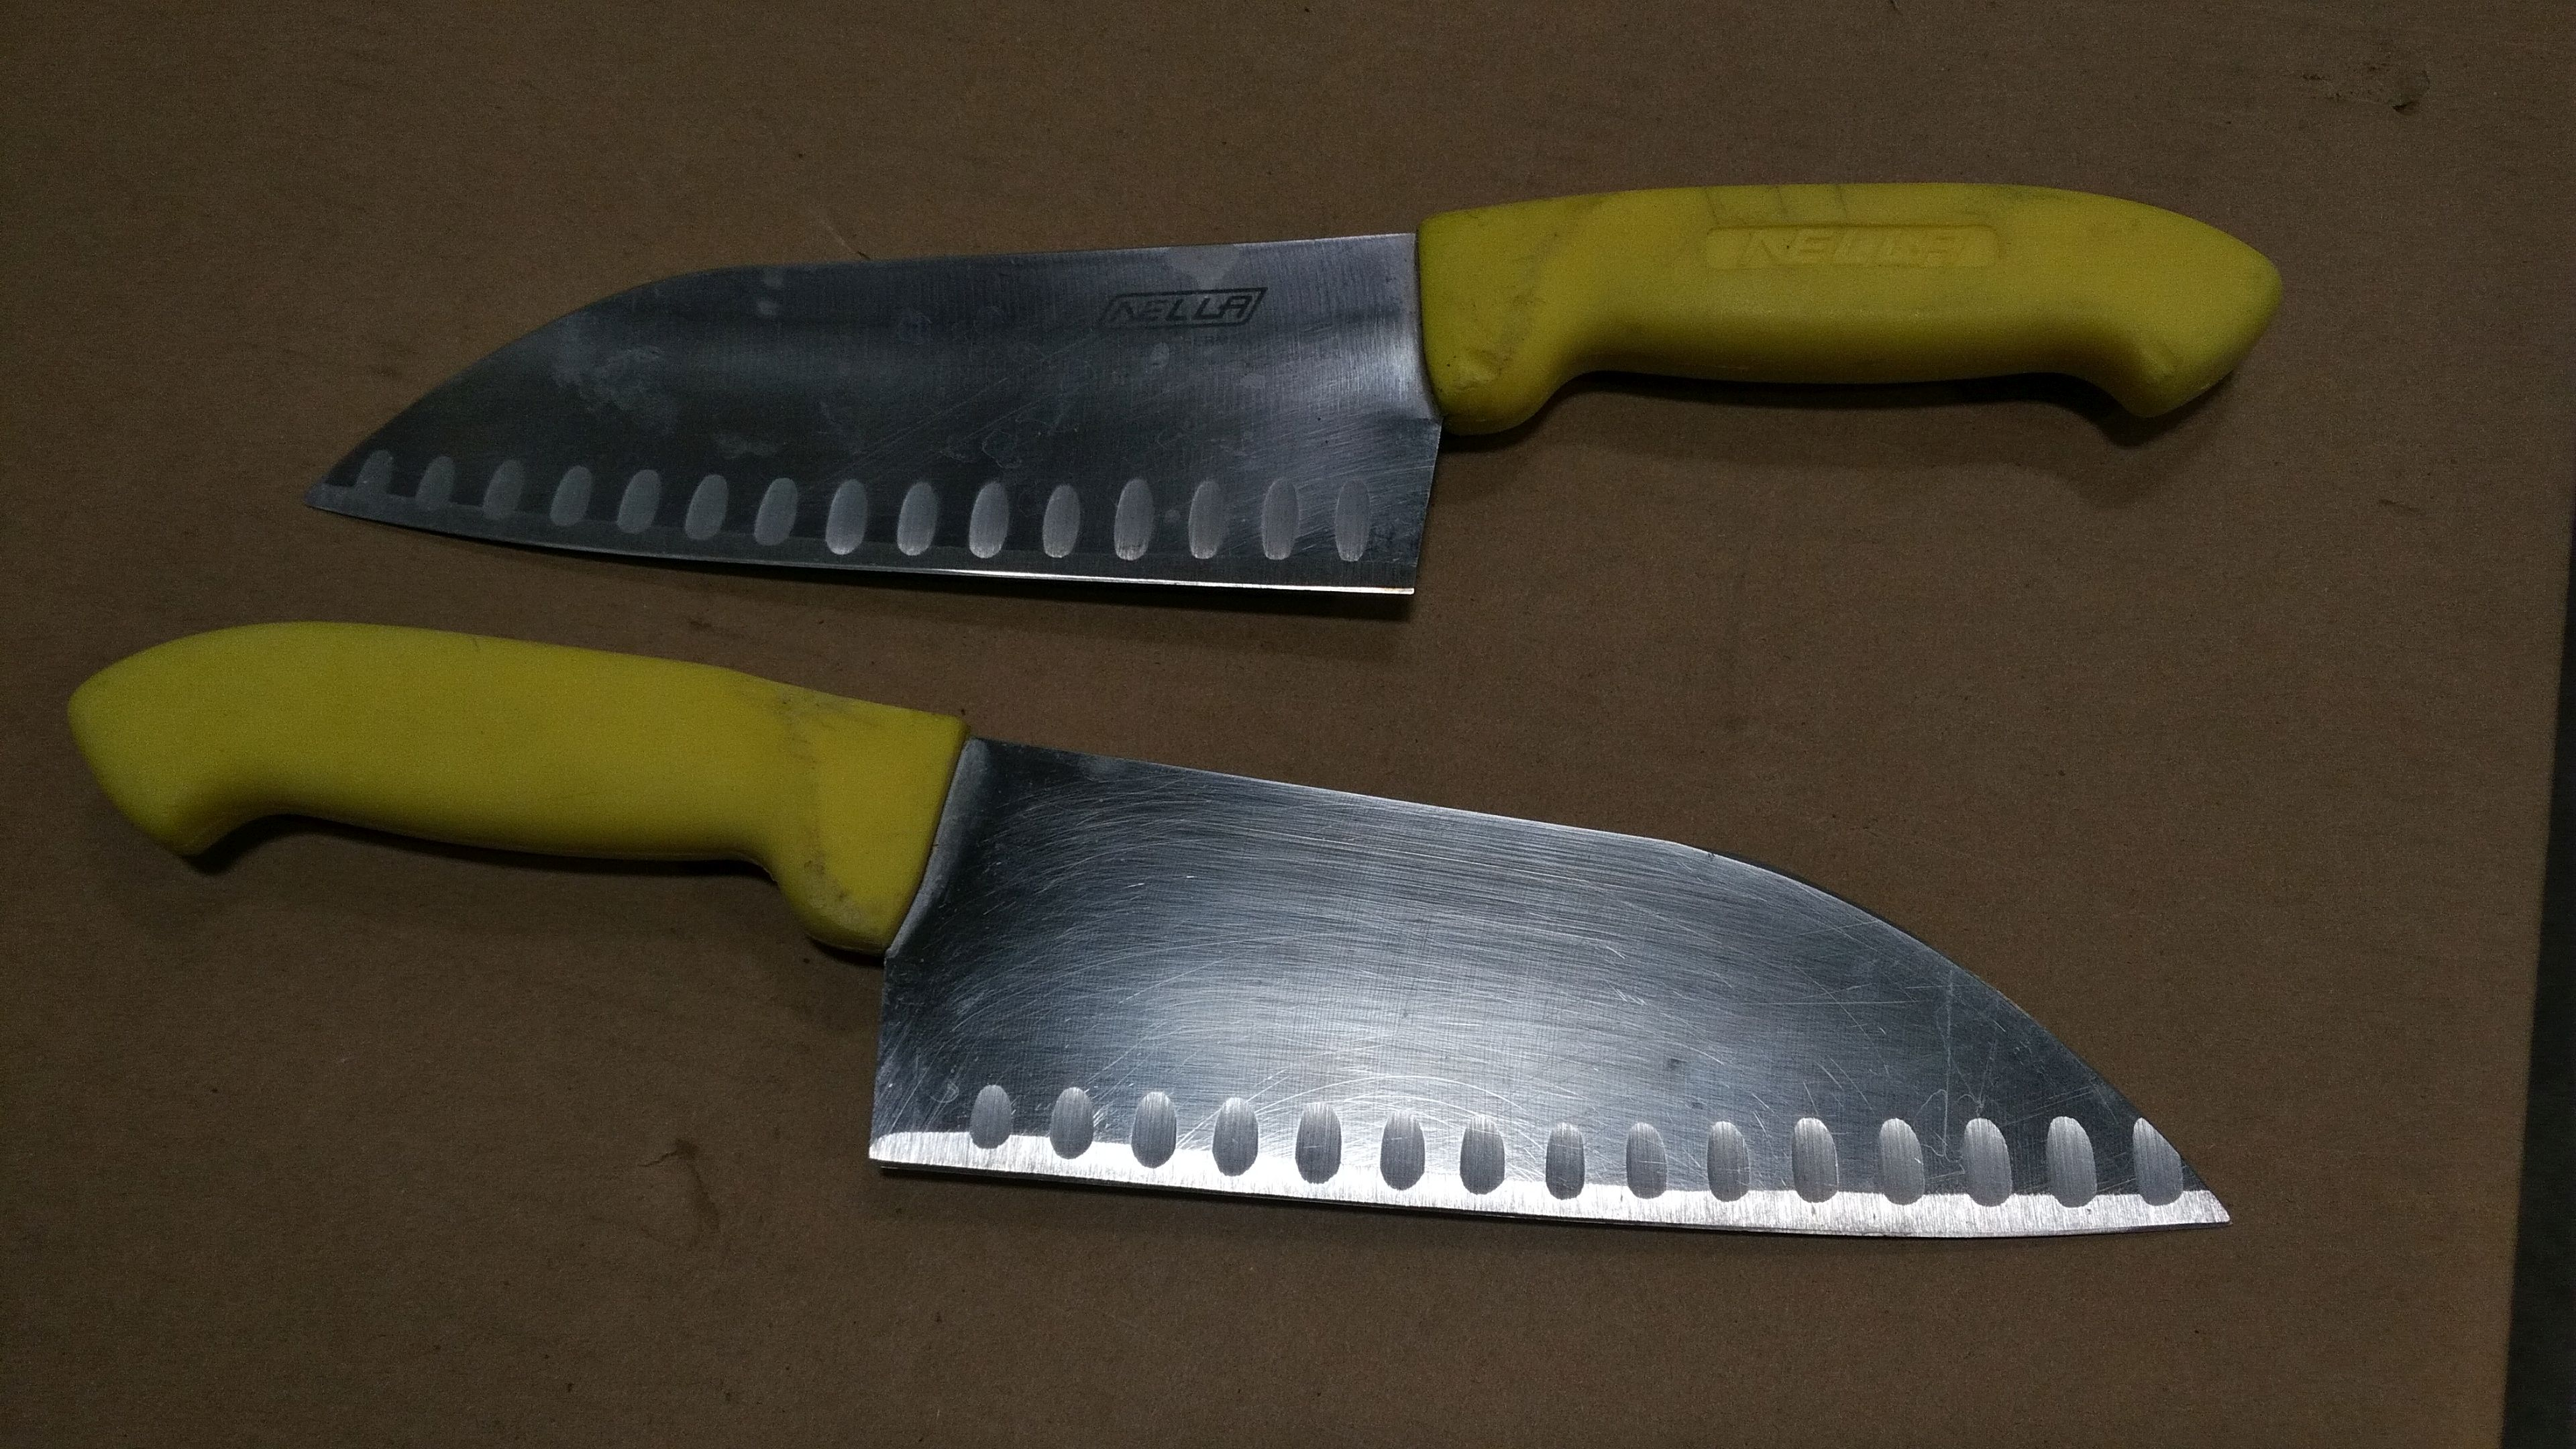 Lot 23 - Used/Sharpened Yellow Santoku Knives - lot of 2